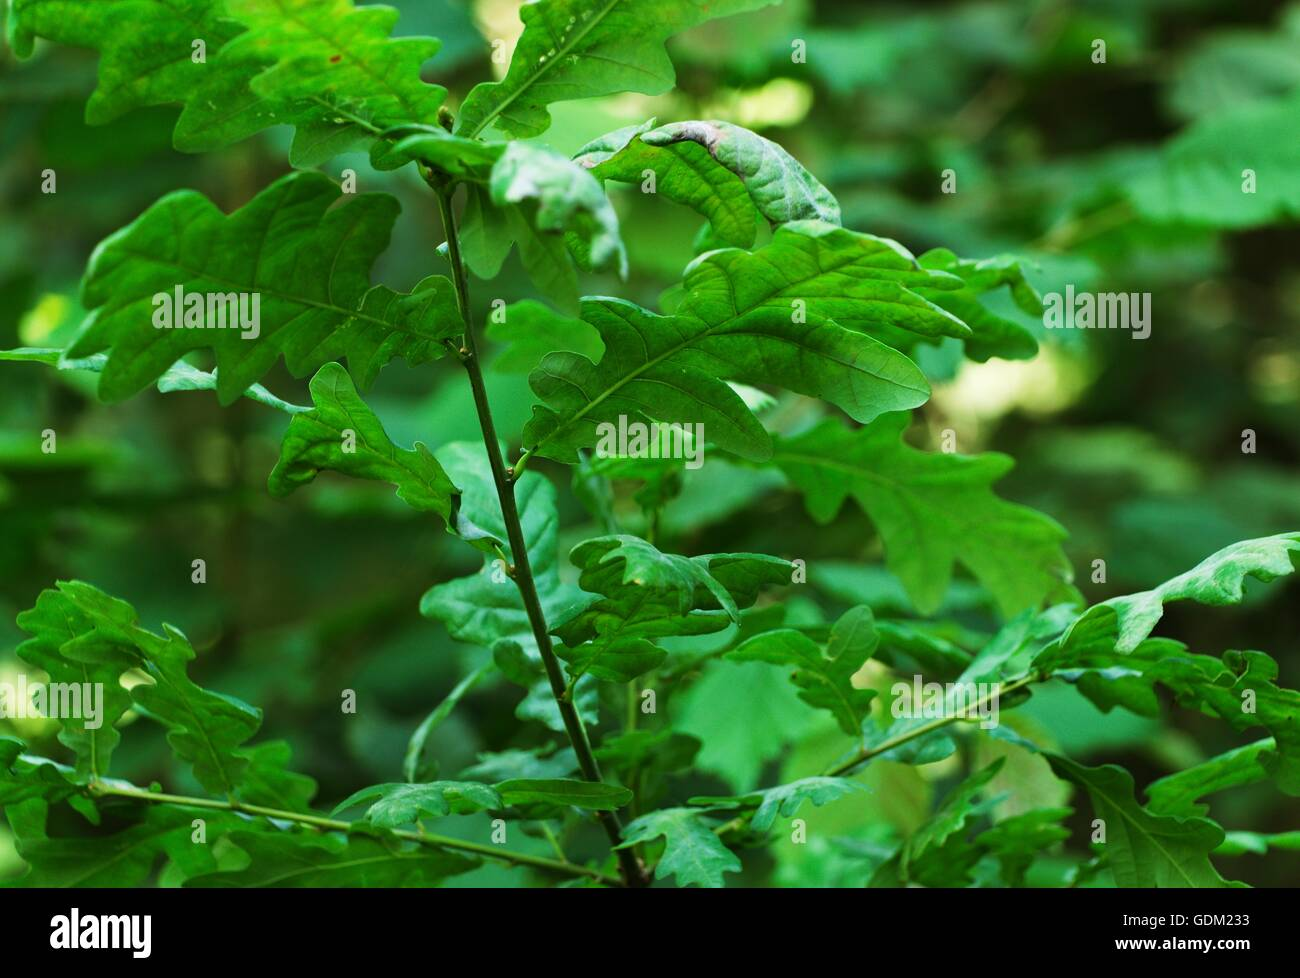 branch of oak leaves with blurred background - Stock Image